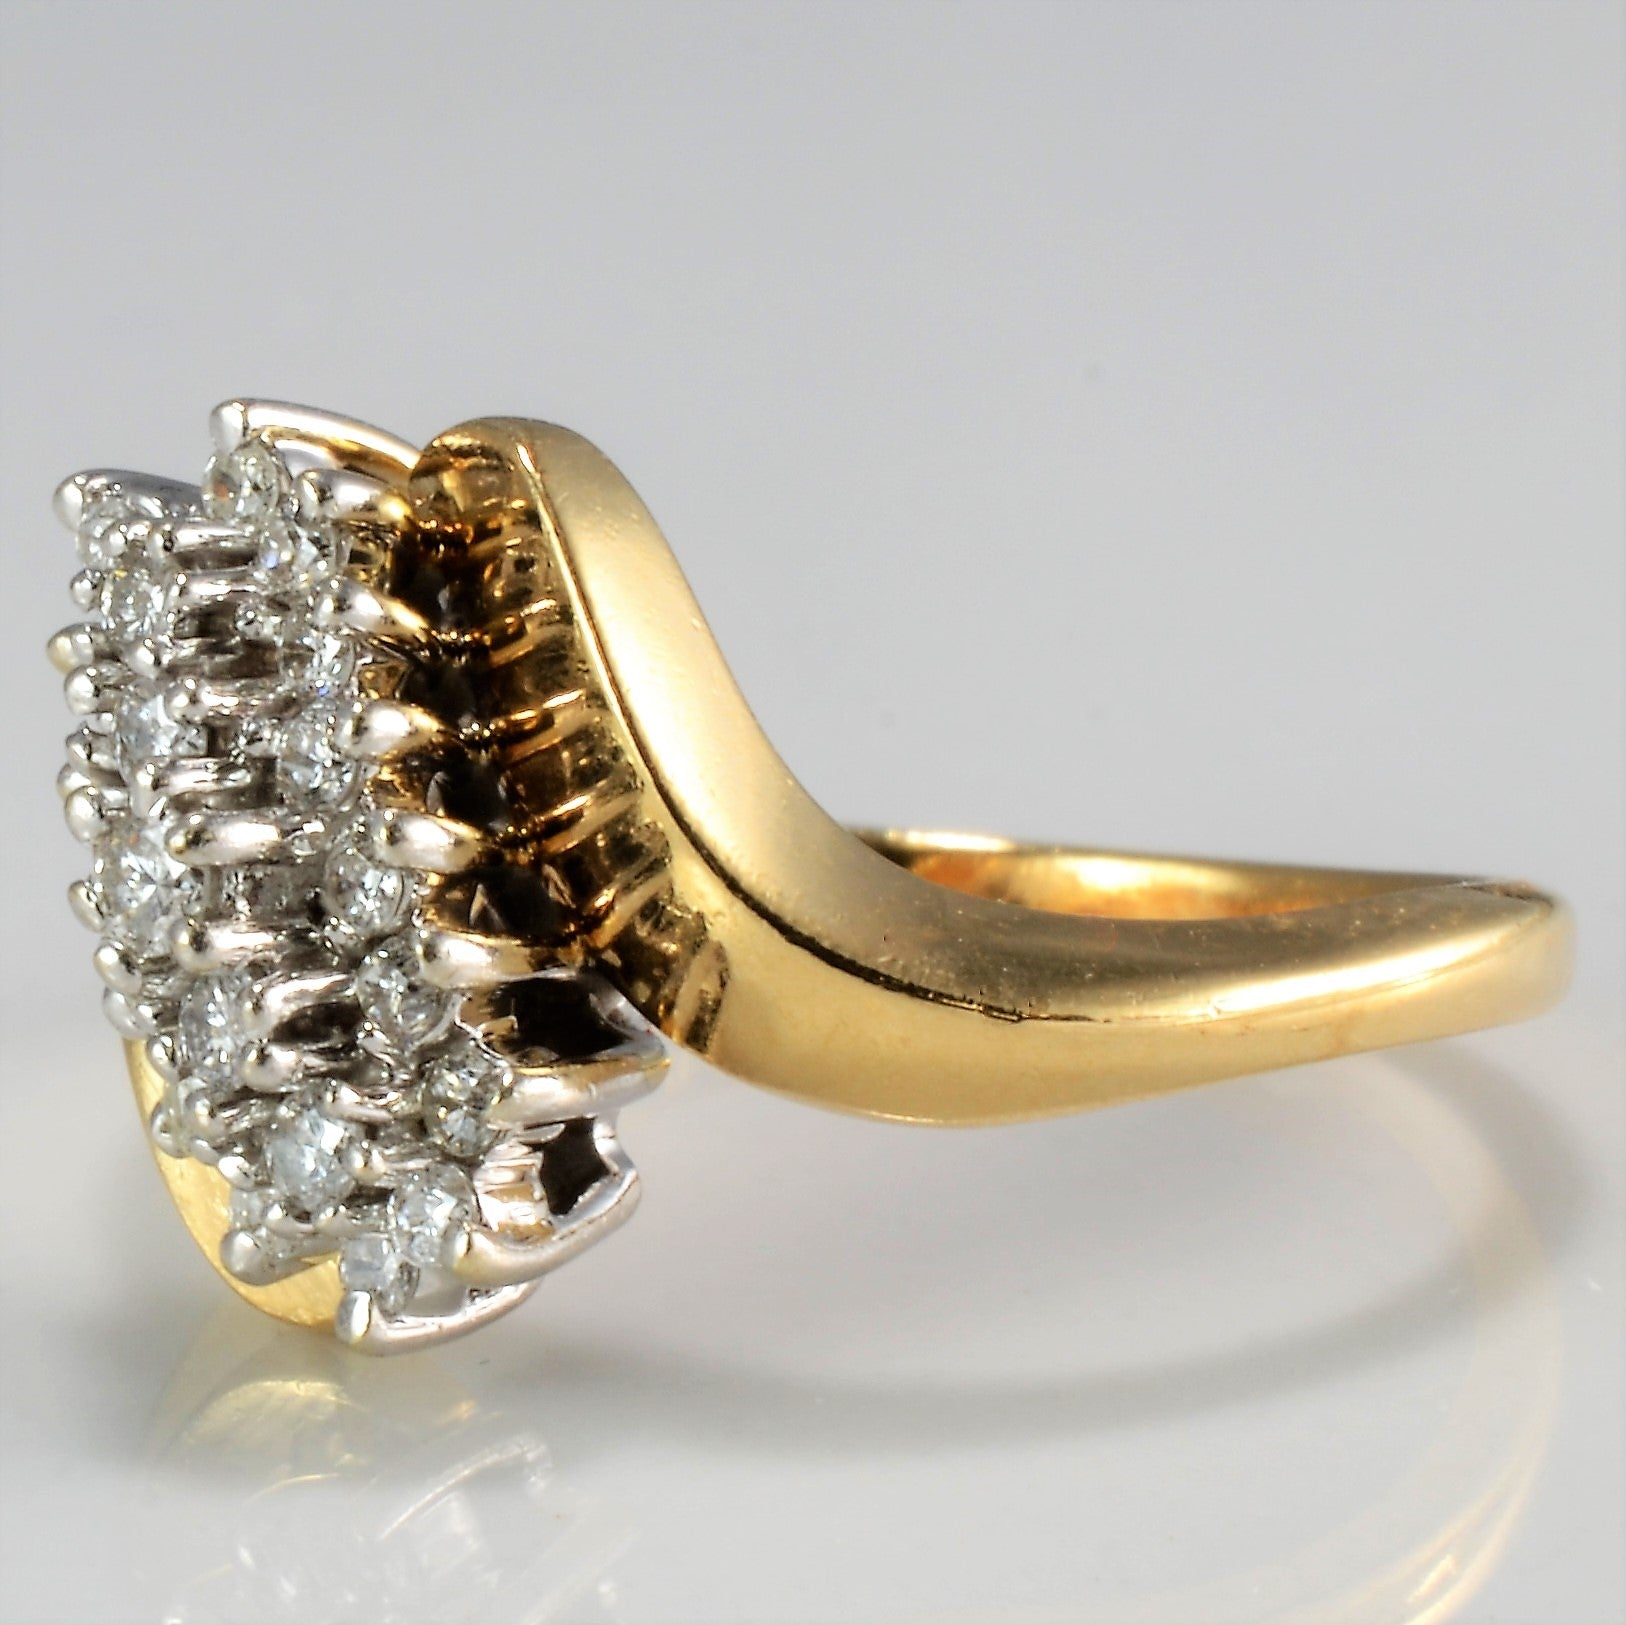 Bypass Cluster Diamond Ring | 0.26 ctw, SZ 6.25 |